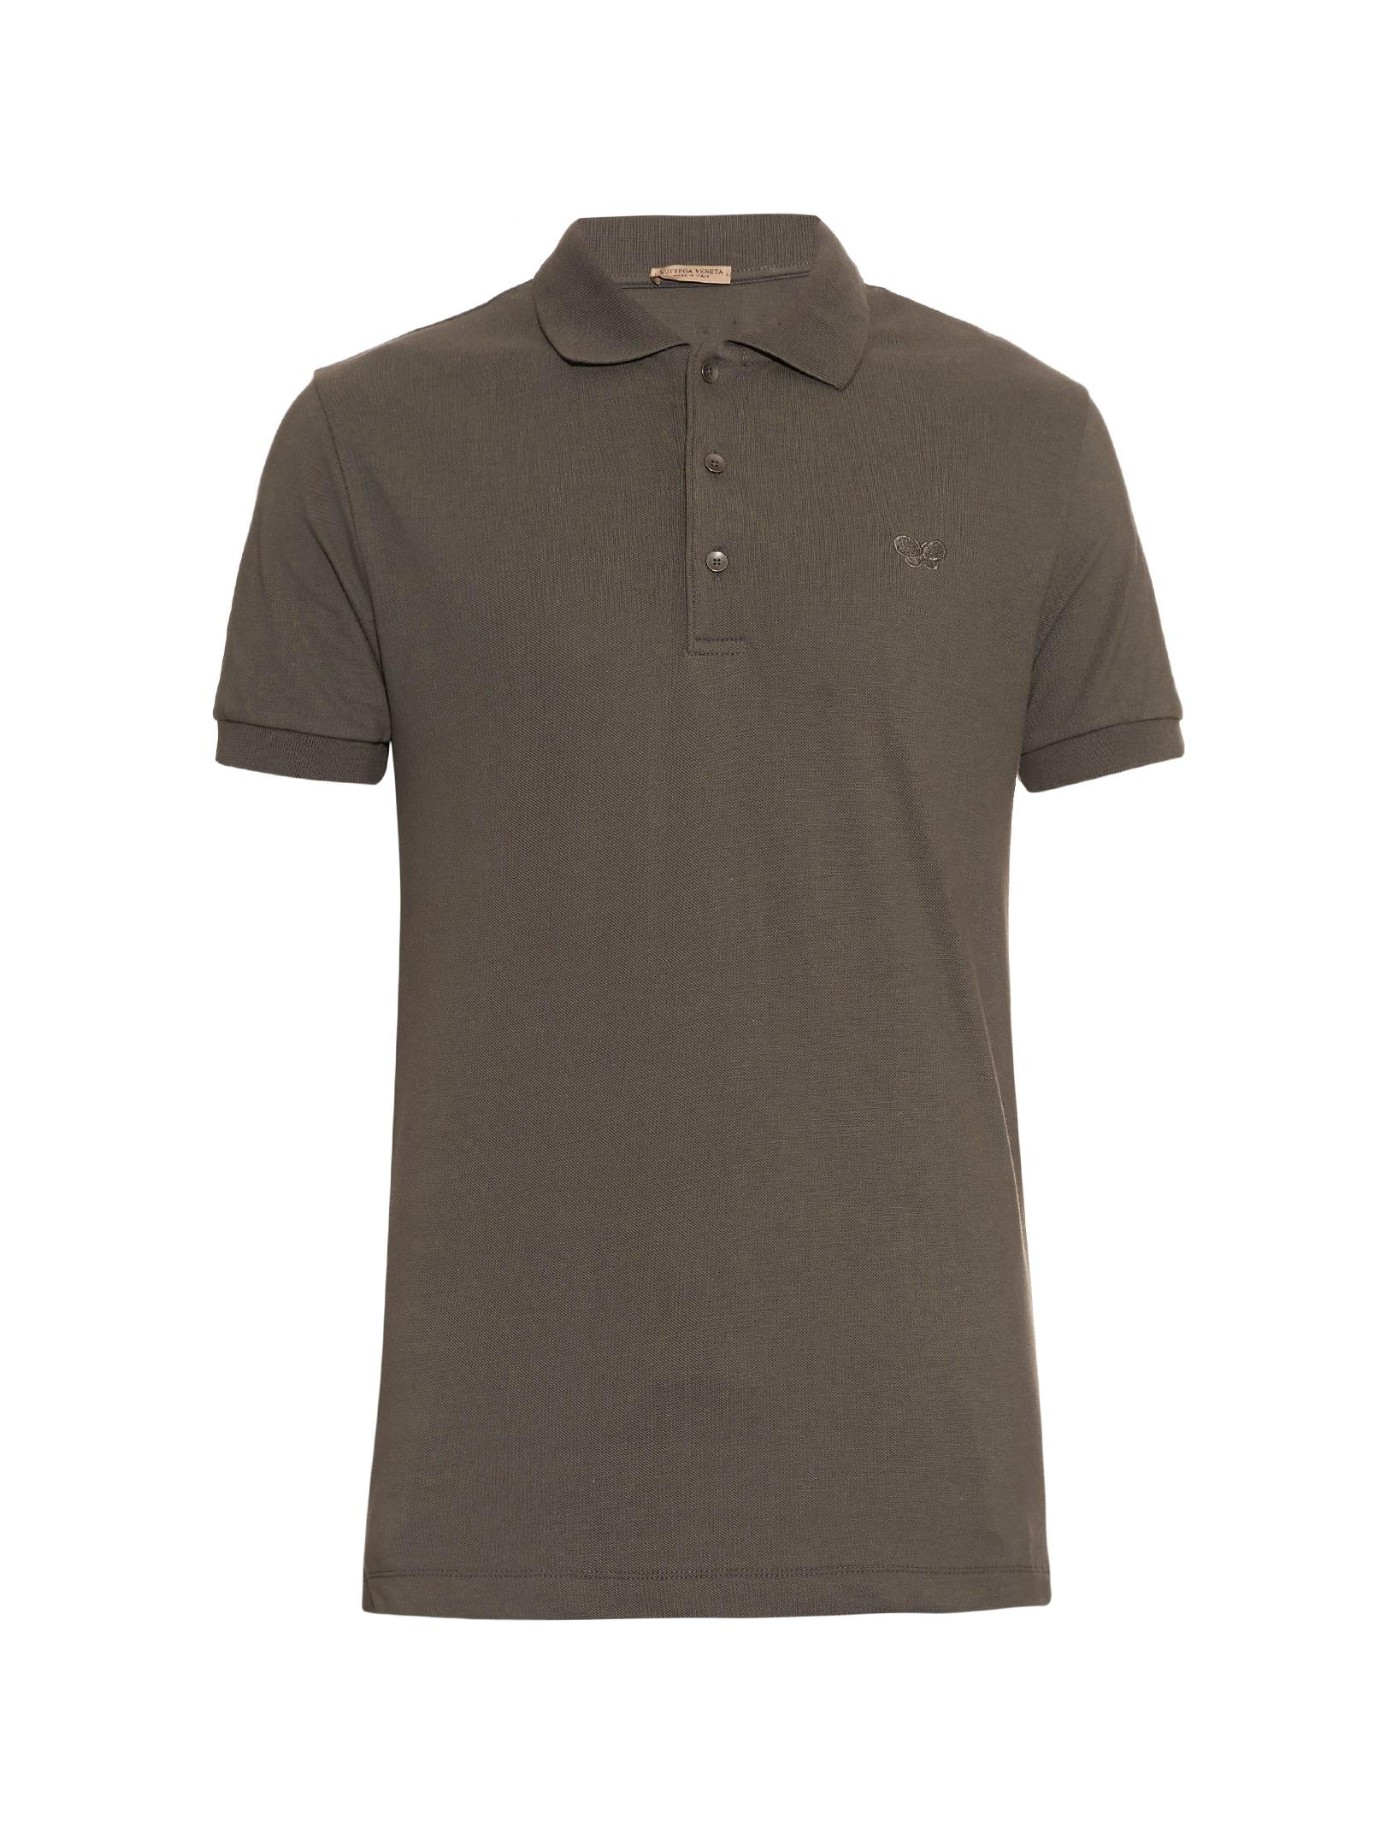 Bottega veneta cotton piqu polo shirt in gray for men lyst for Bottega veneta t shirt